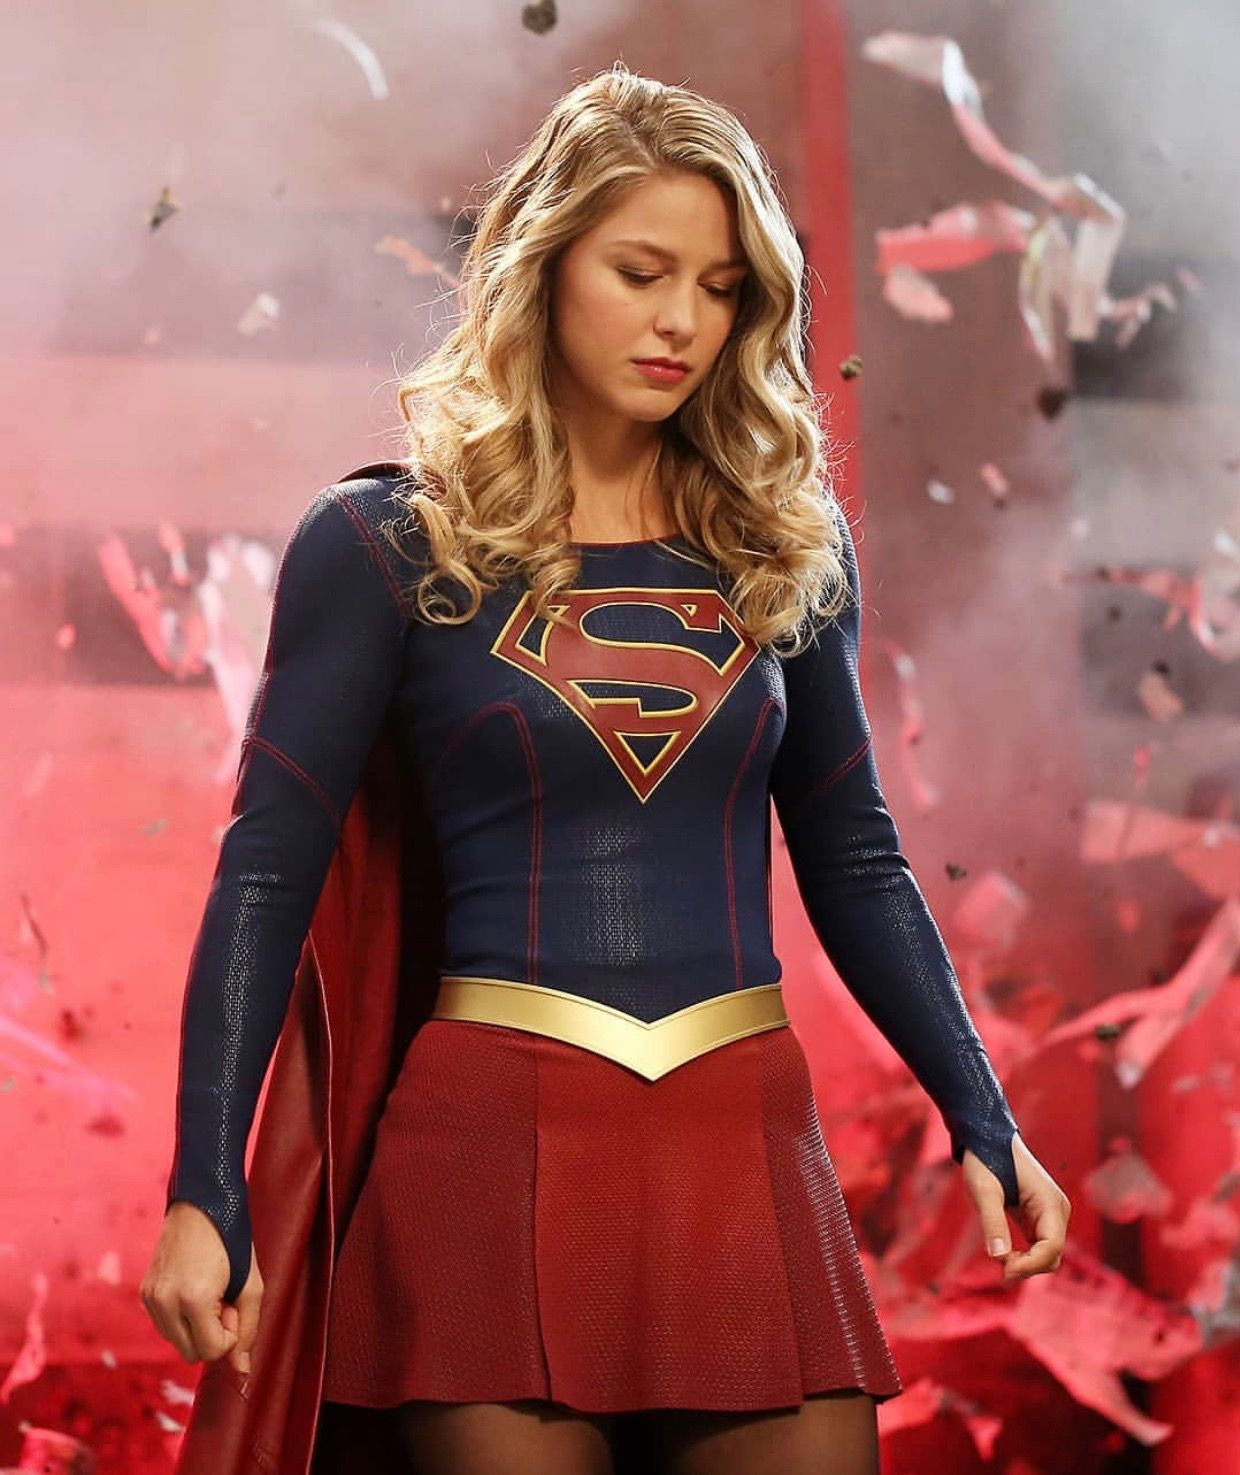 Pin By Maraphalla Chan On Melissa Benoist The Super Cute Supergirl Supergirl Season Melissa Supergirl Supergirl